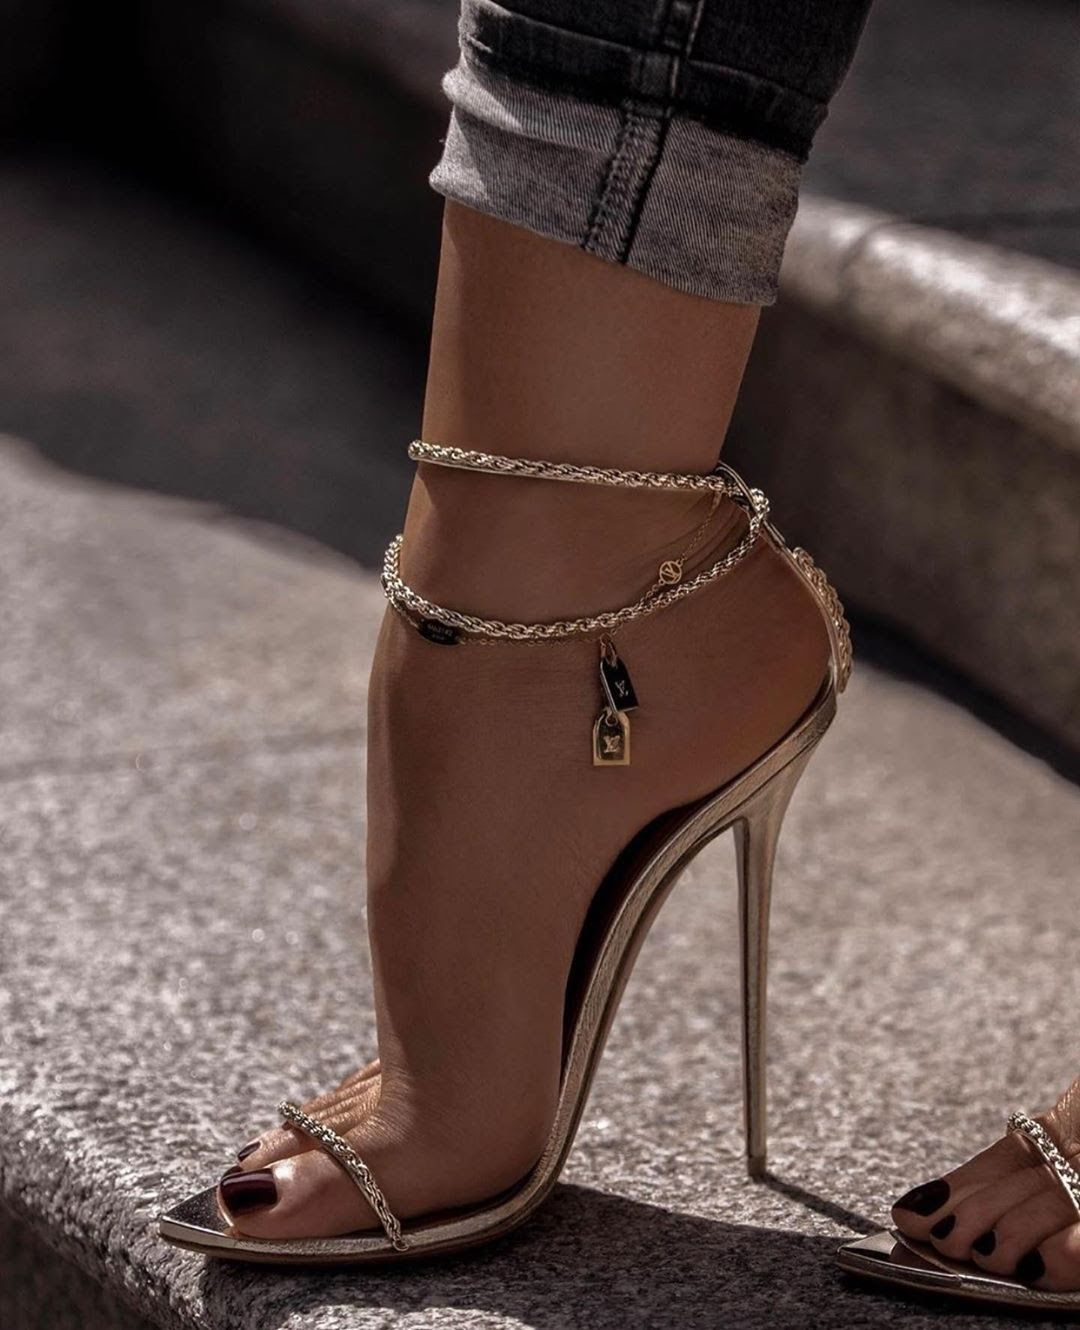 Pin by Sven Alfsson on Shoes High Heels in 2020 | Shoes